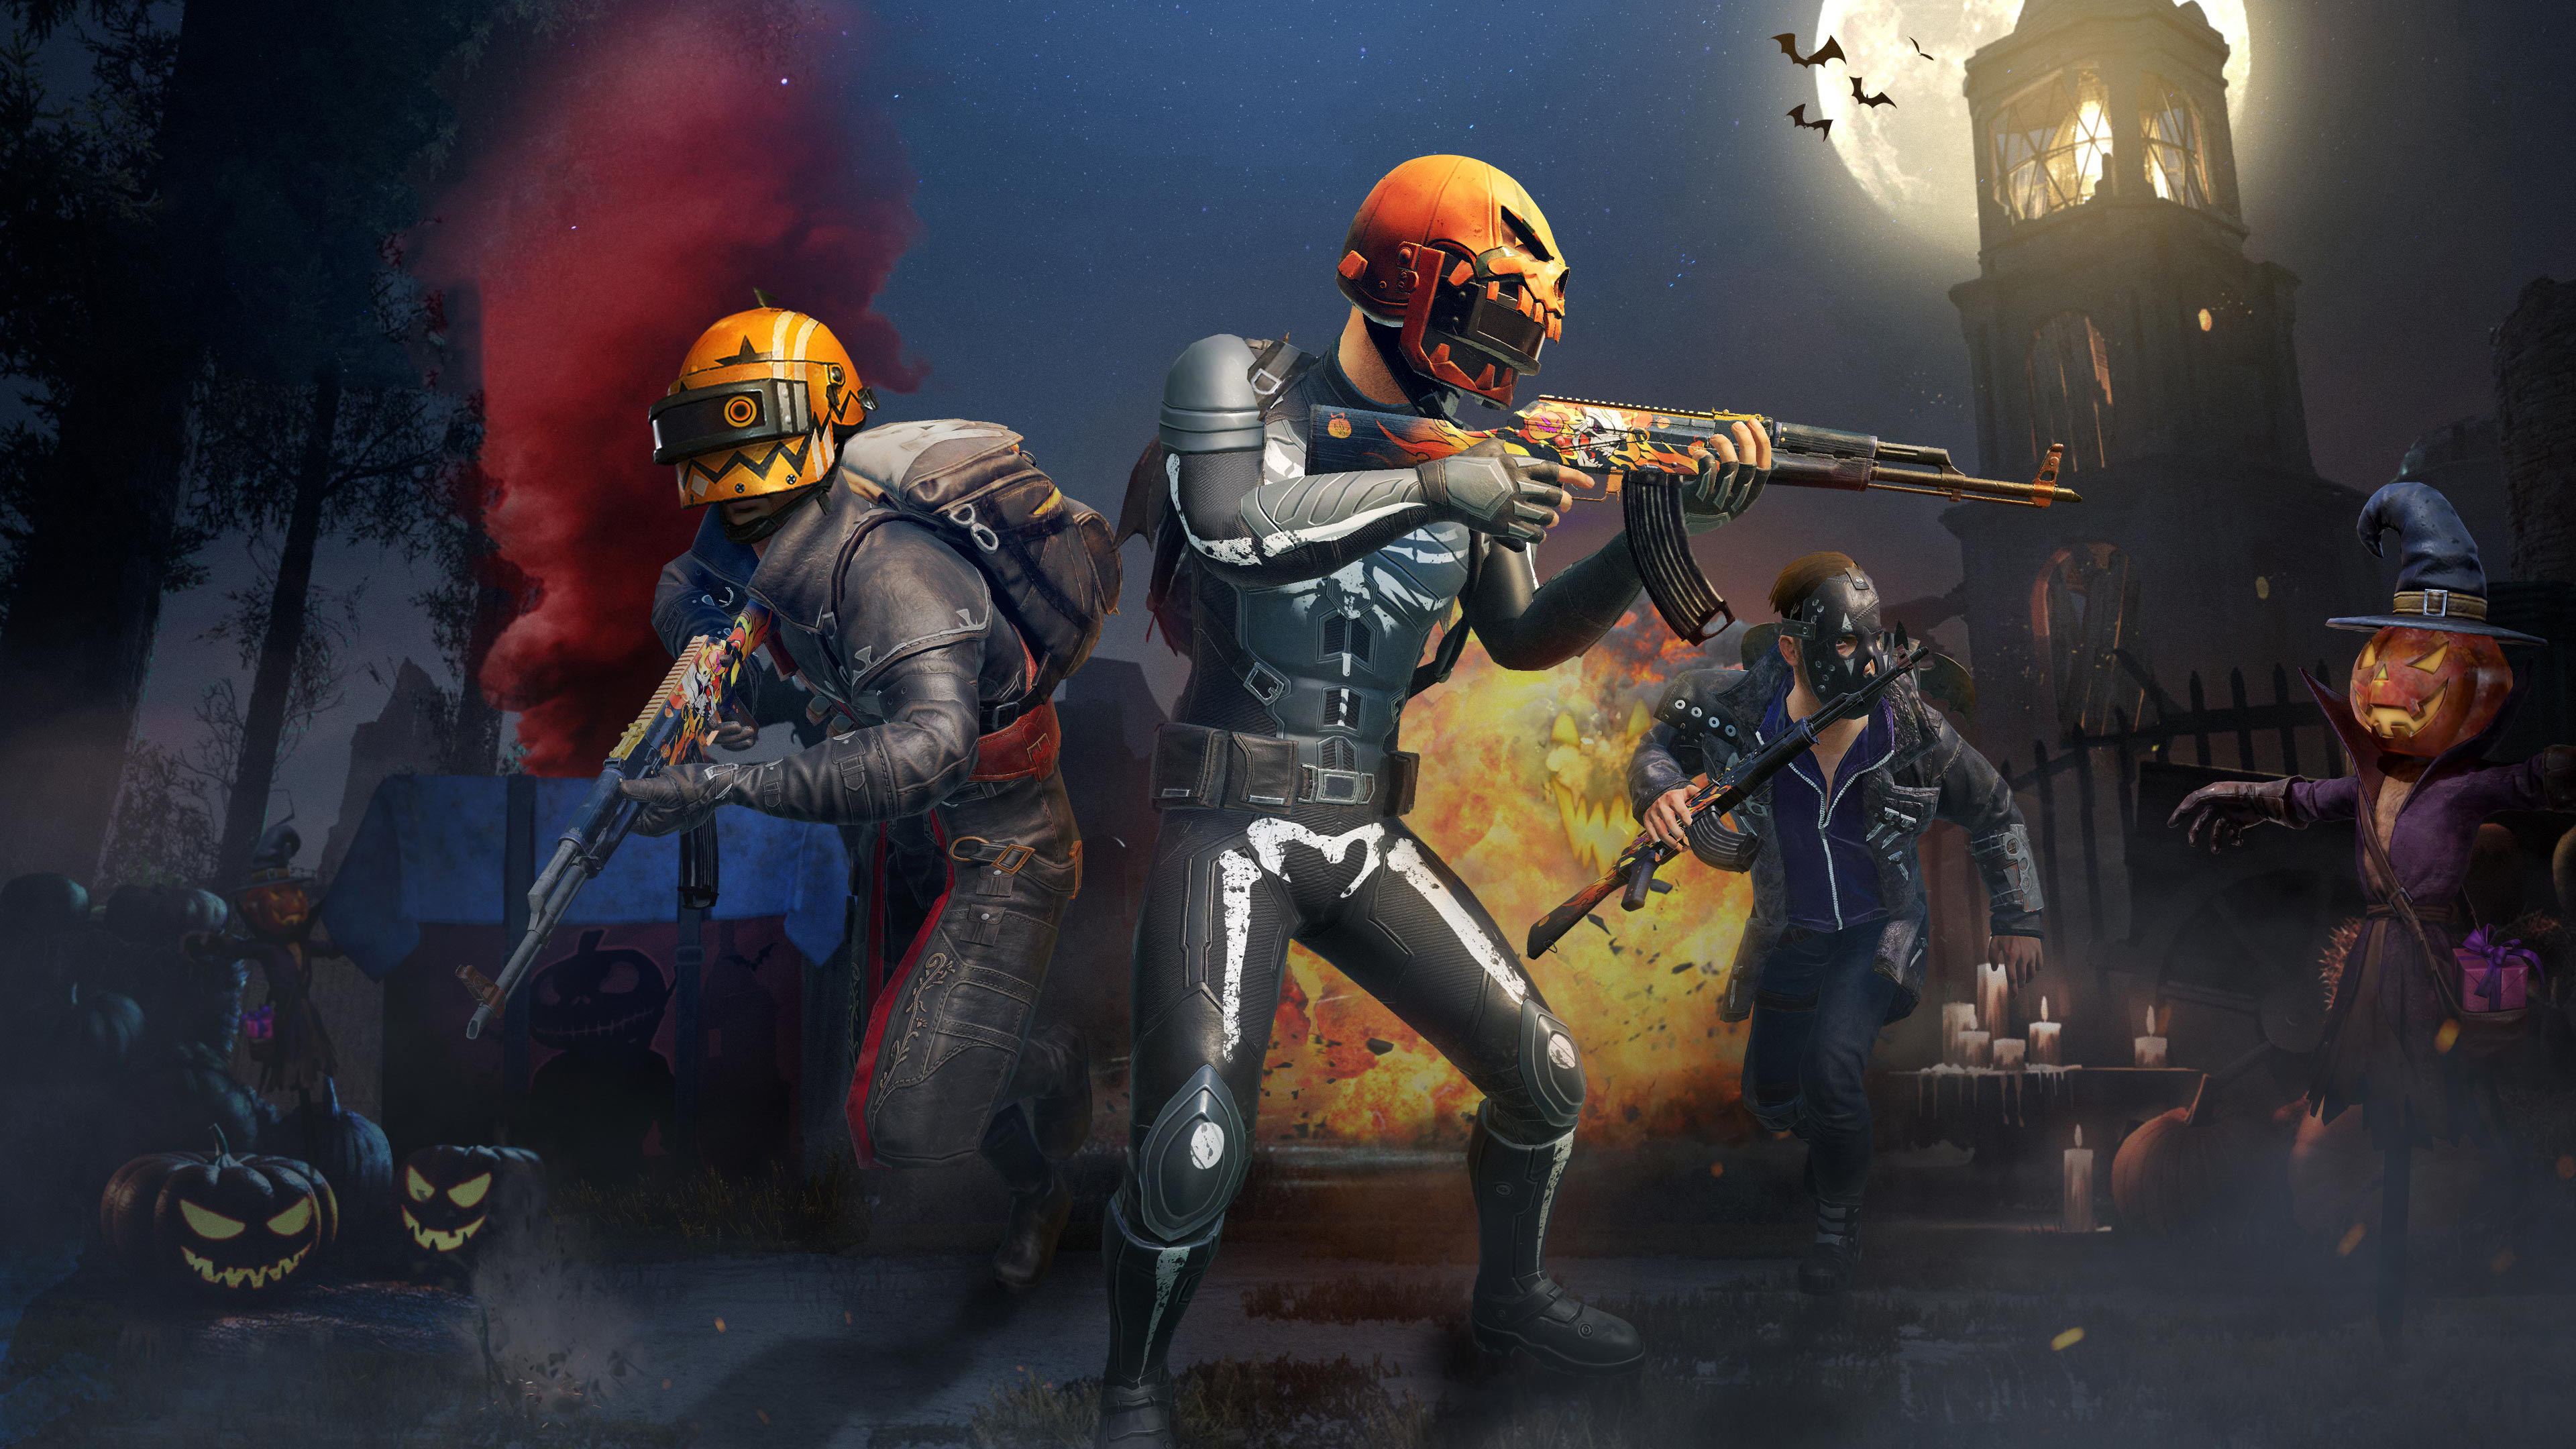 Pubg Hd Wallpaper 1920x1080 Need Iphone 6s Plus: PUBG Mobile Halloween Update 4K Wallpapers